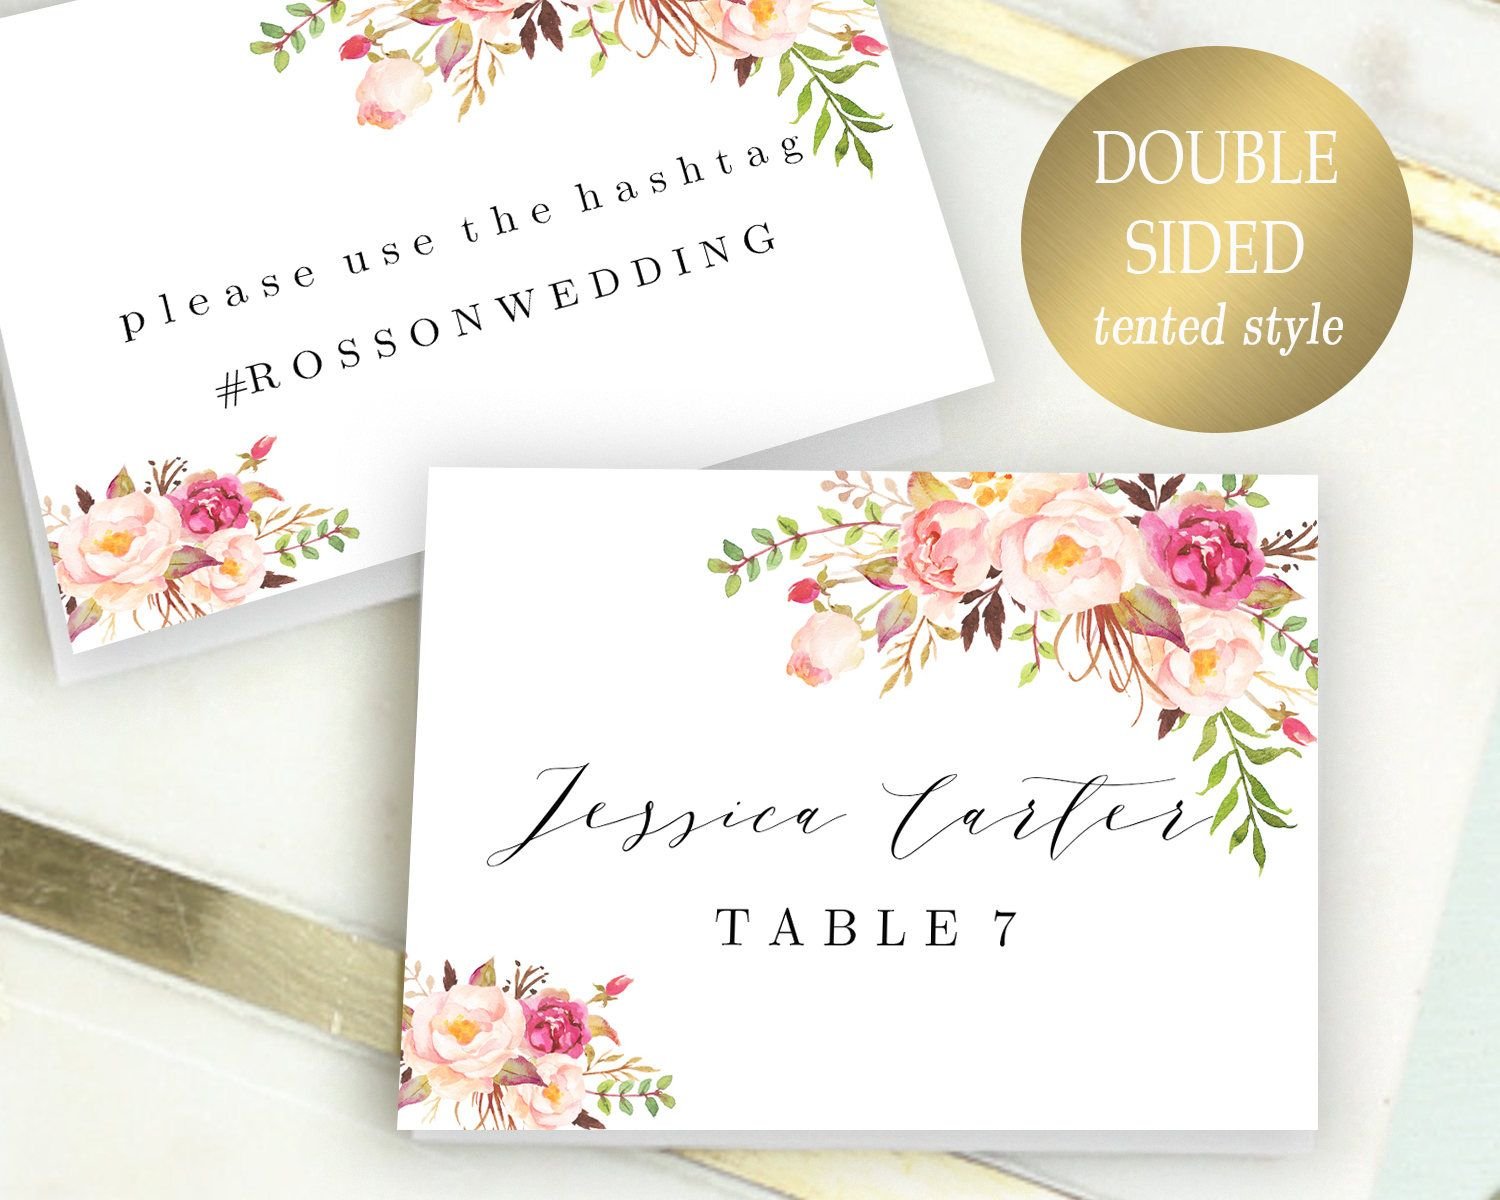 Free Avery Templates Place Cards 6 Per Sheet Place Card Template Wedding Place Card Templates Printable Place Cards